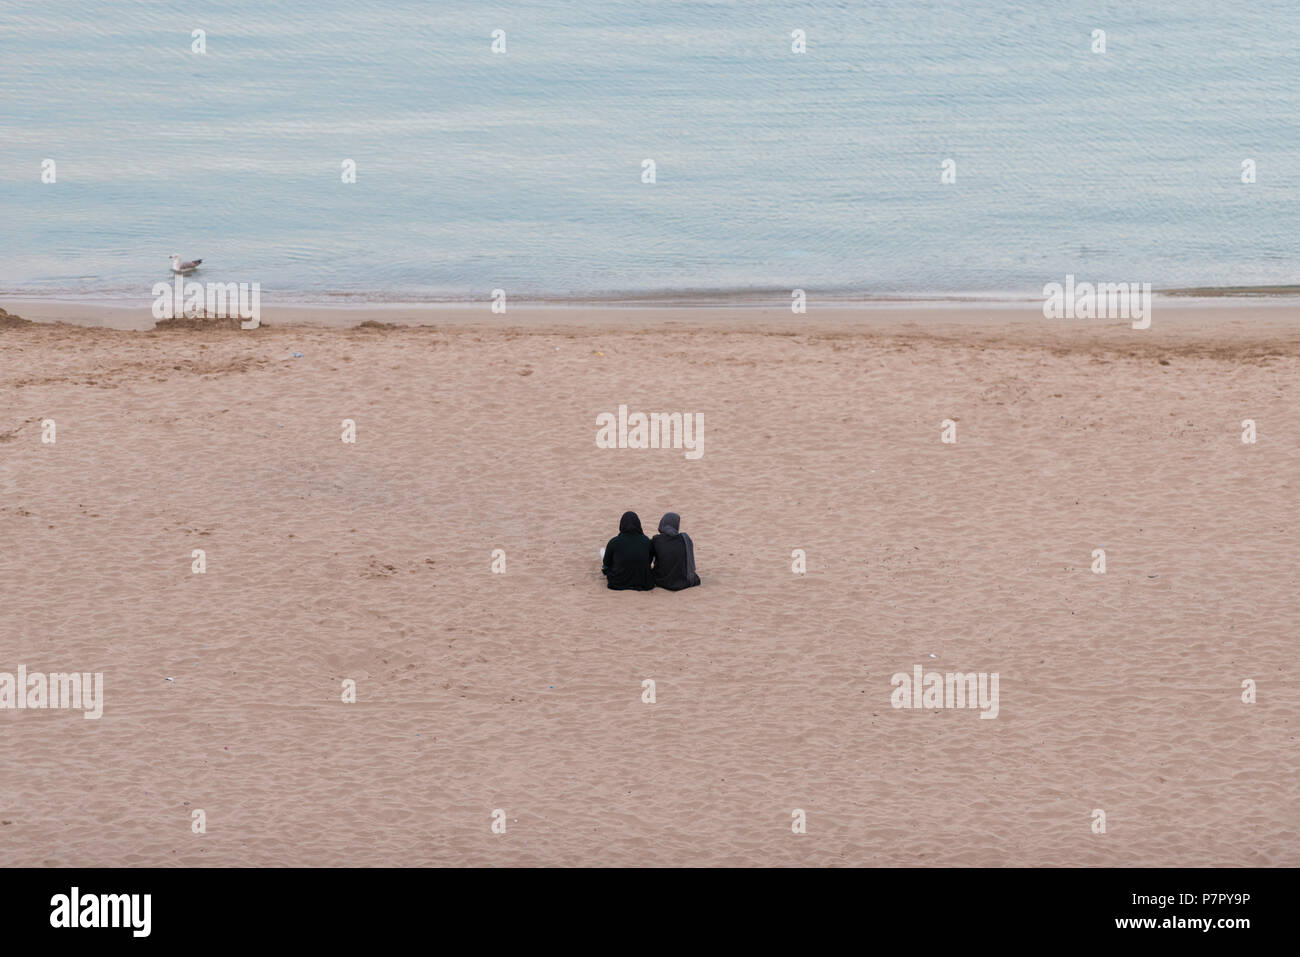 Two women with hijabs sitting on their backs in the sand of Quemado beach at sunset in Al Hoceima, Morocco - Stock Image